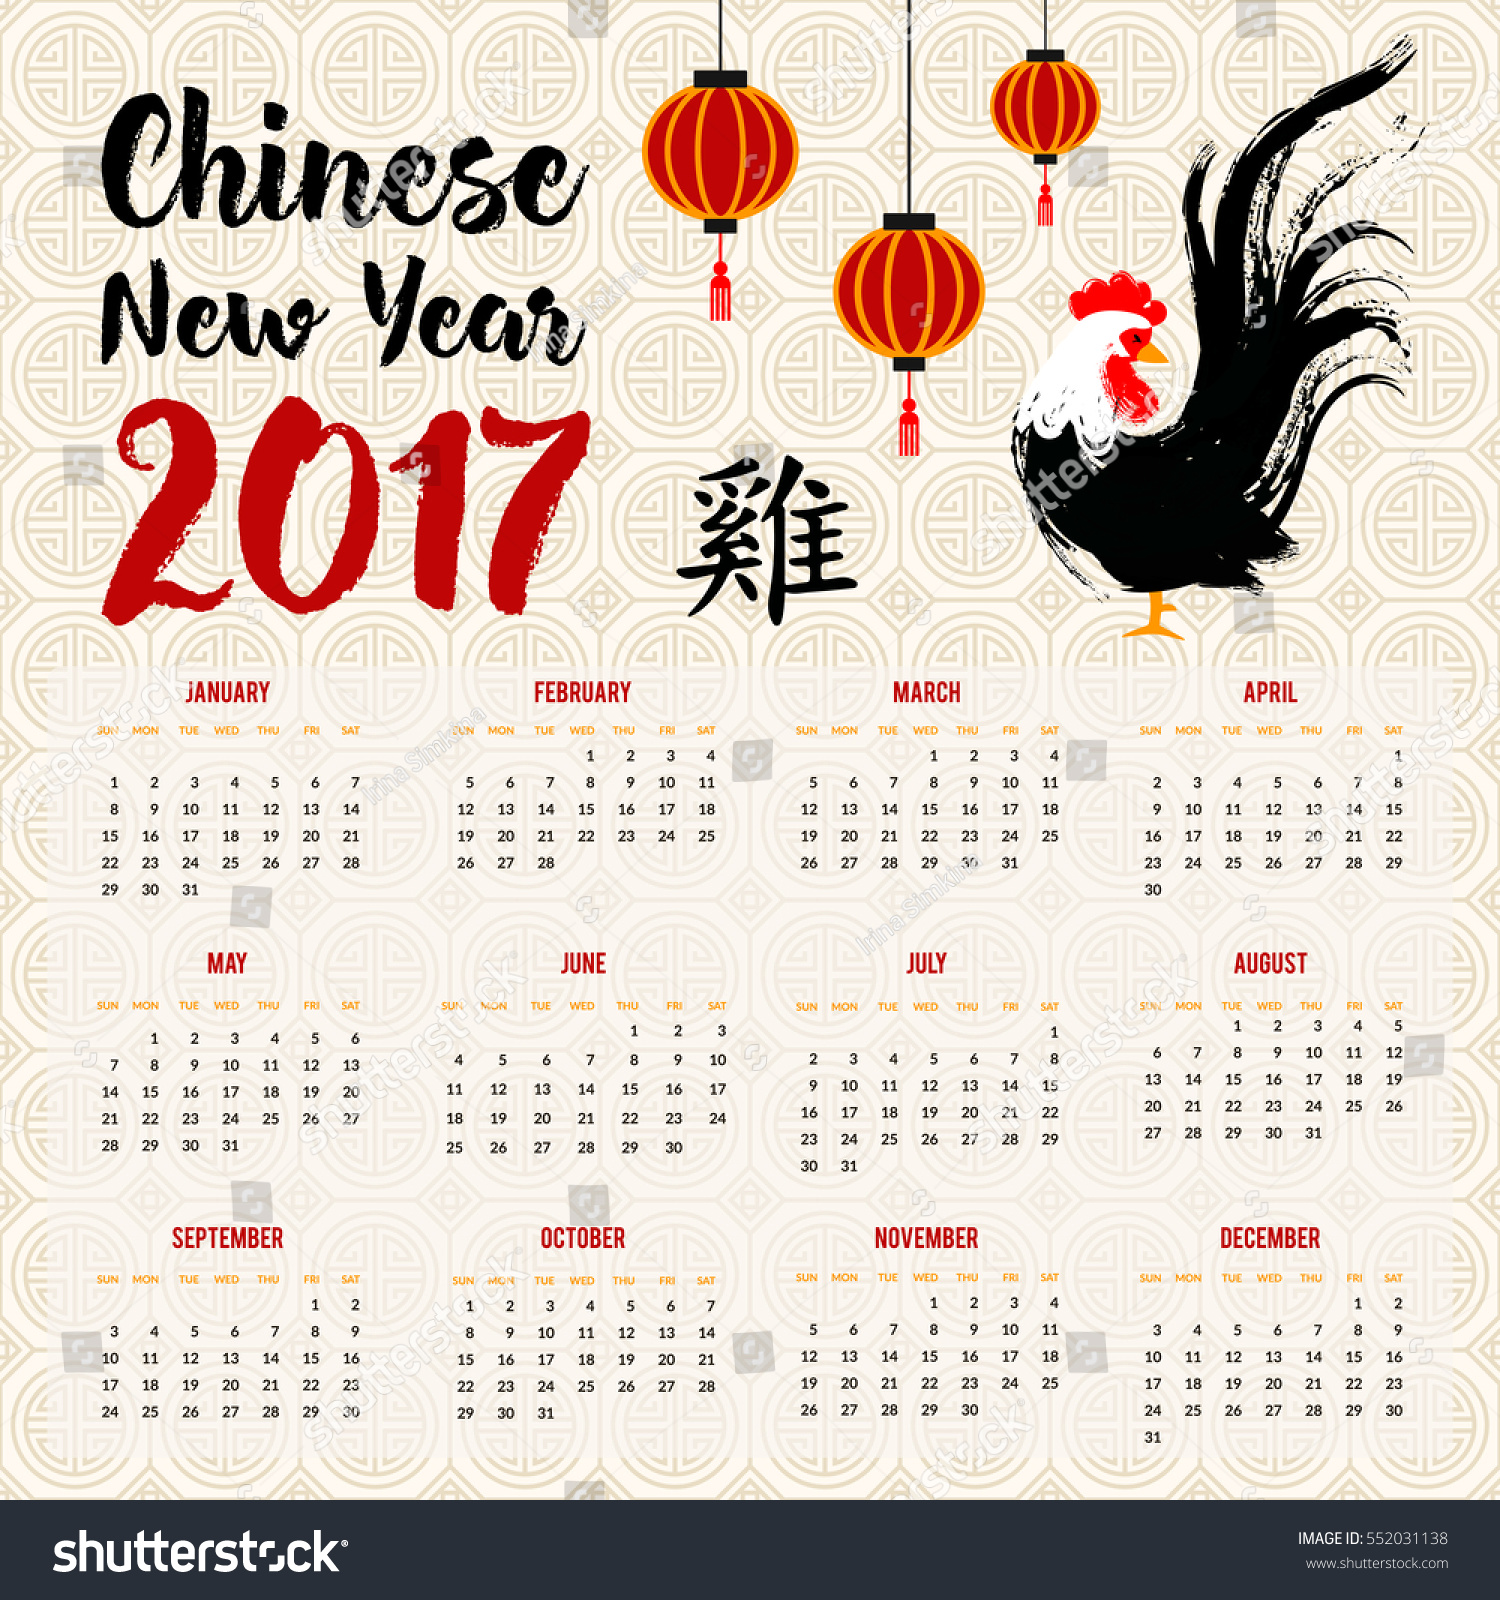 Chinese Calendar Illustration : Calendar chinese new year elements stock vector